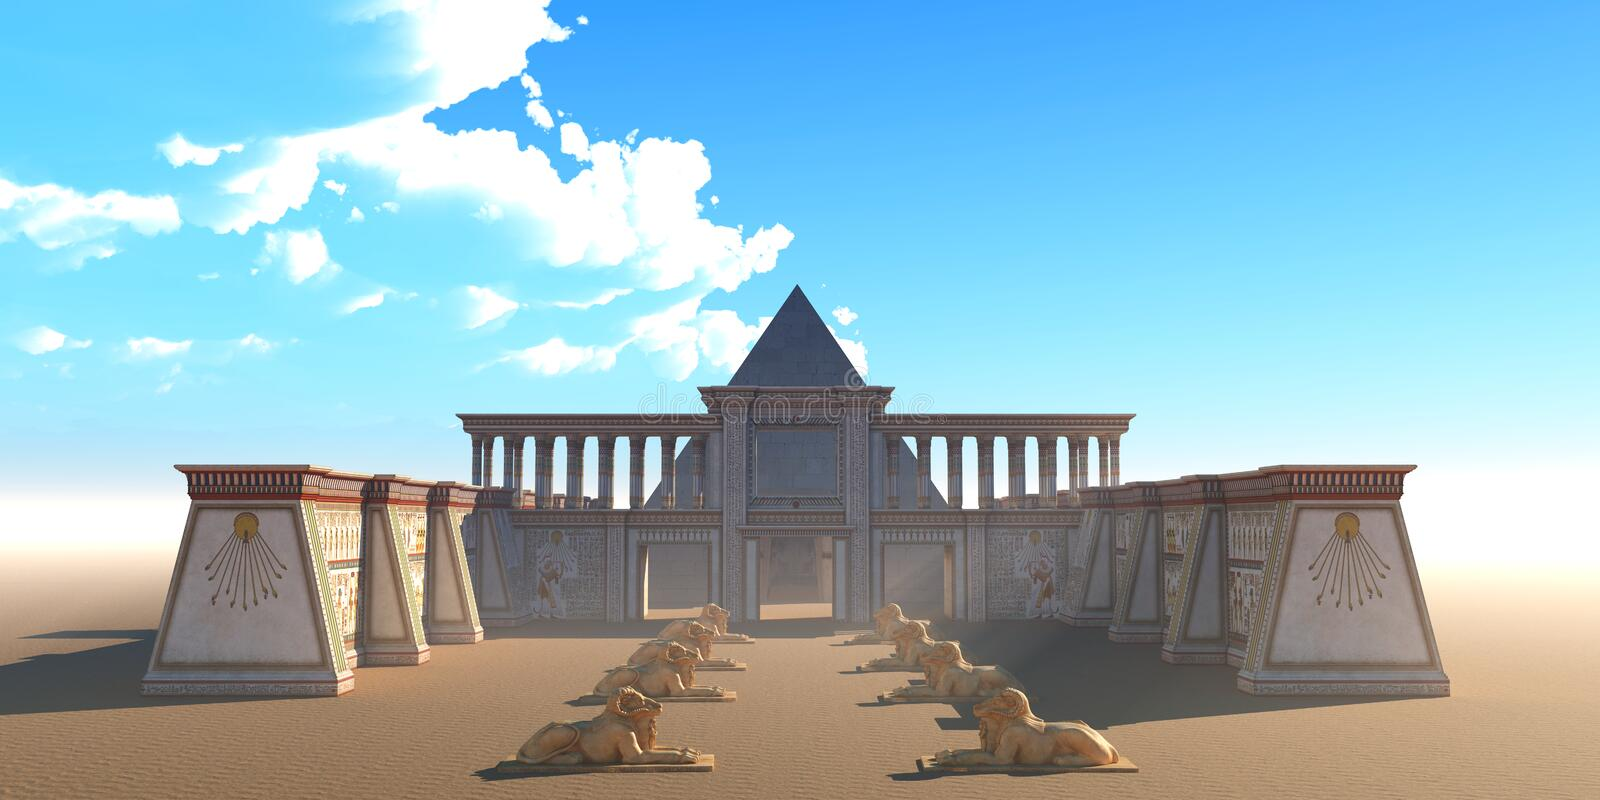 Pyramid Egyptian Temple. An Egyptian temple and pyramid building complex in the deserts of Egypt along the Nile river royalty free illustration